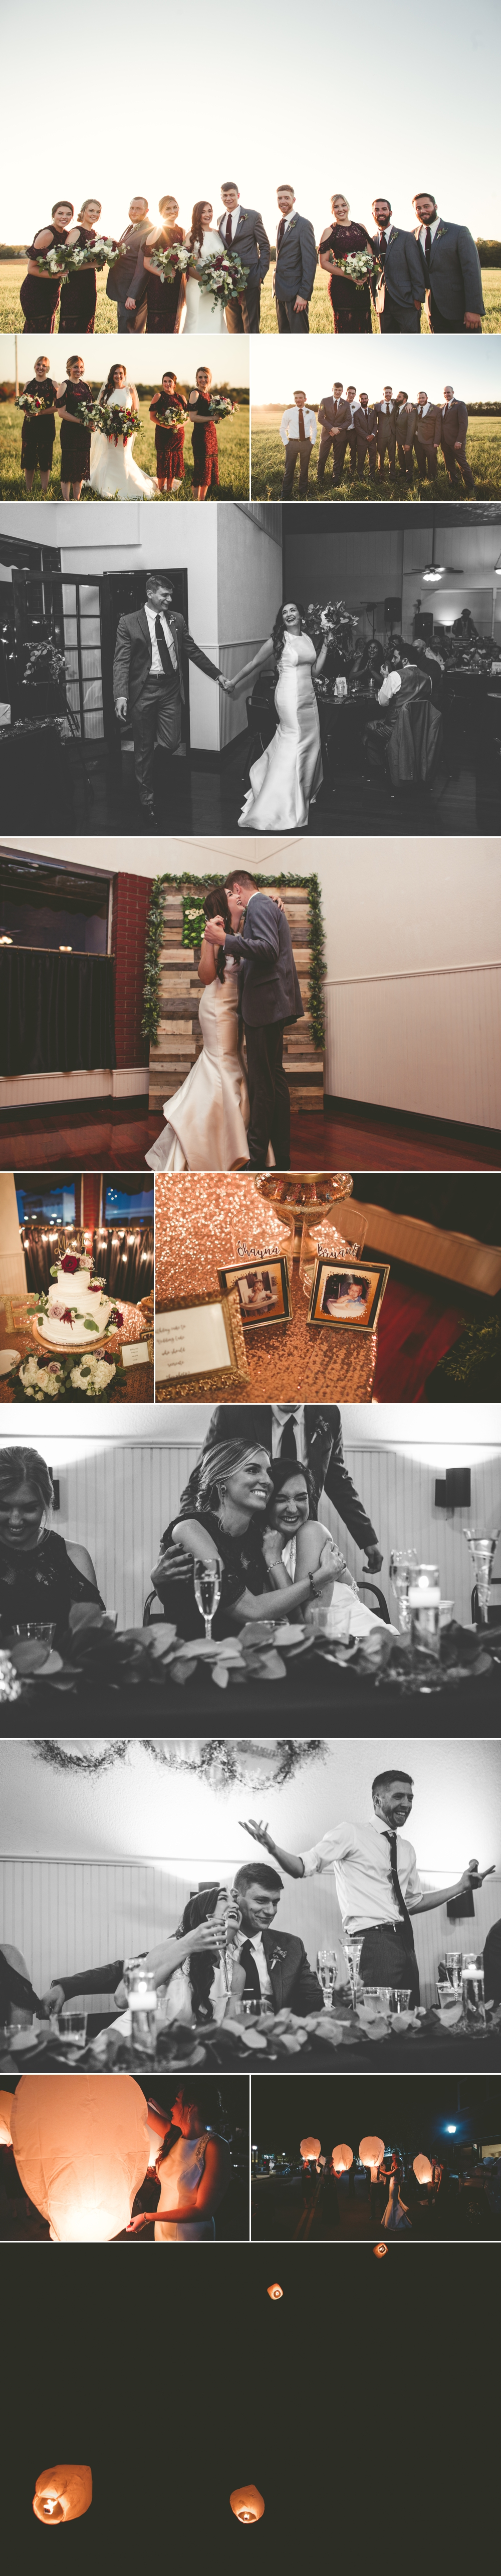 jason_domingues_photography_best_kansas_city_wedding_photographer_kc_weddings_tonganoxie_ks_brunswick_ballroom_0003.JPG